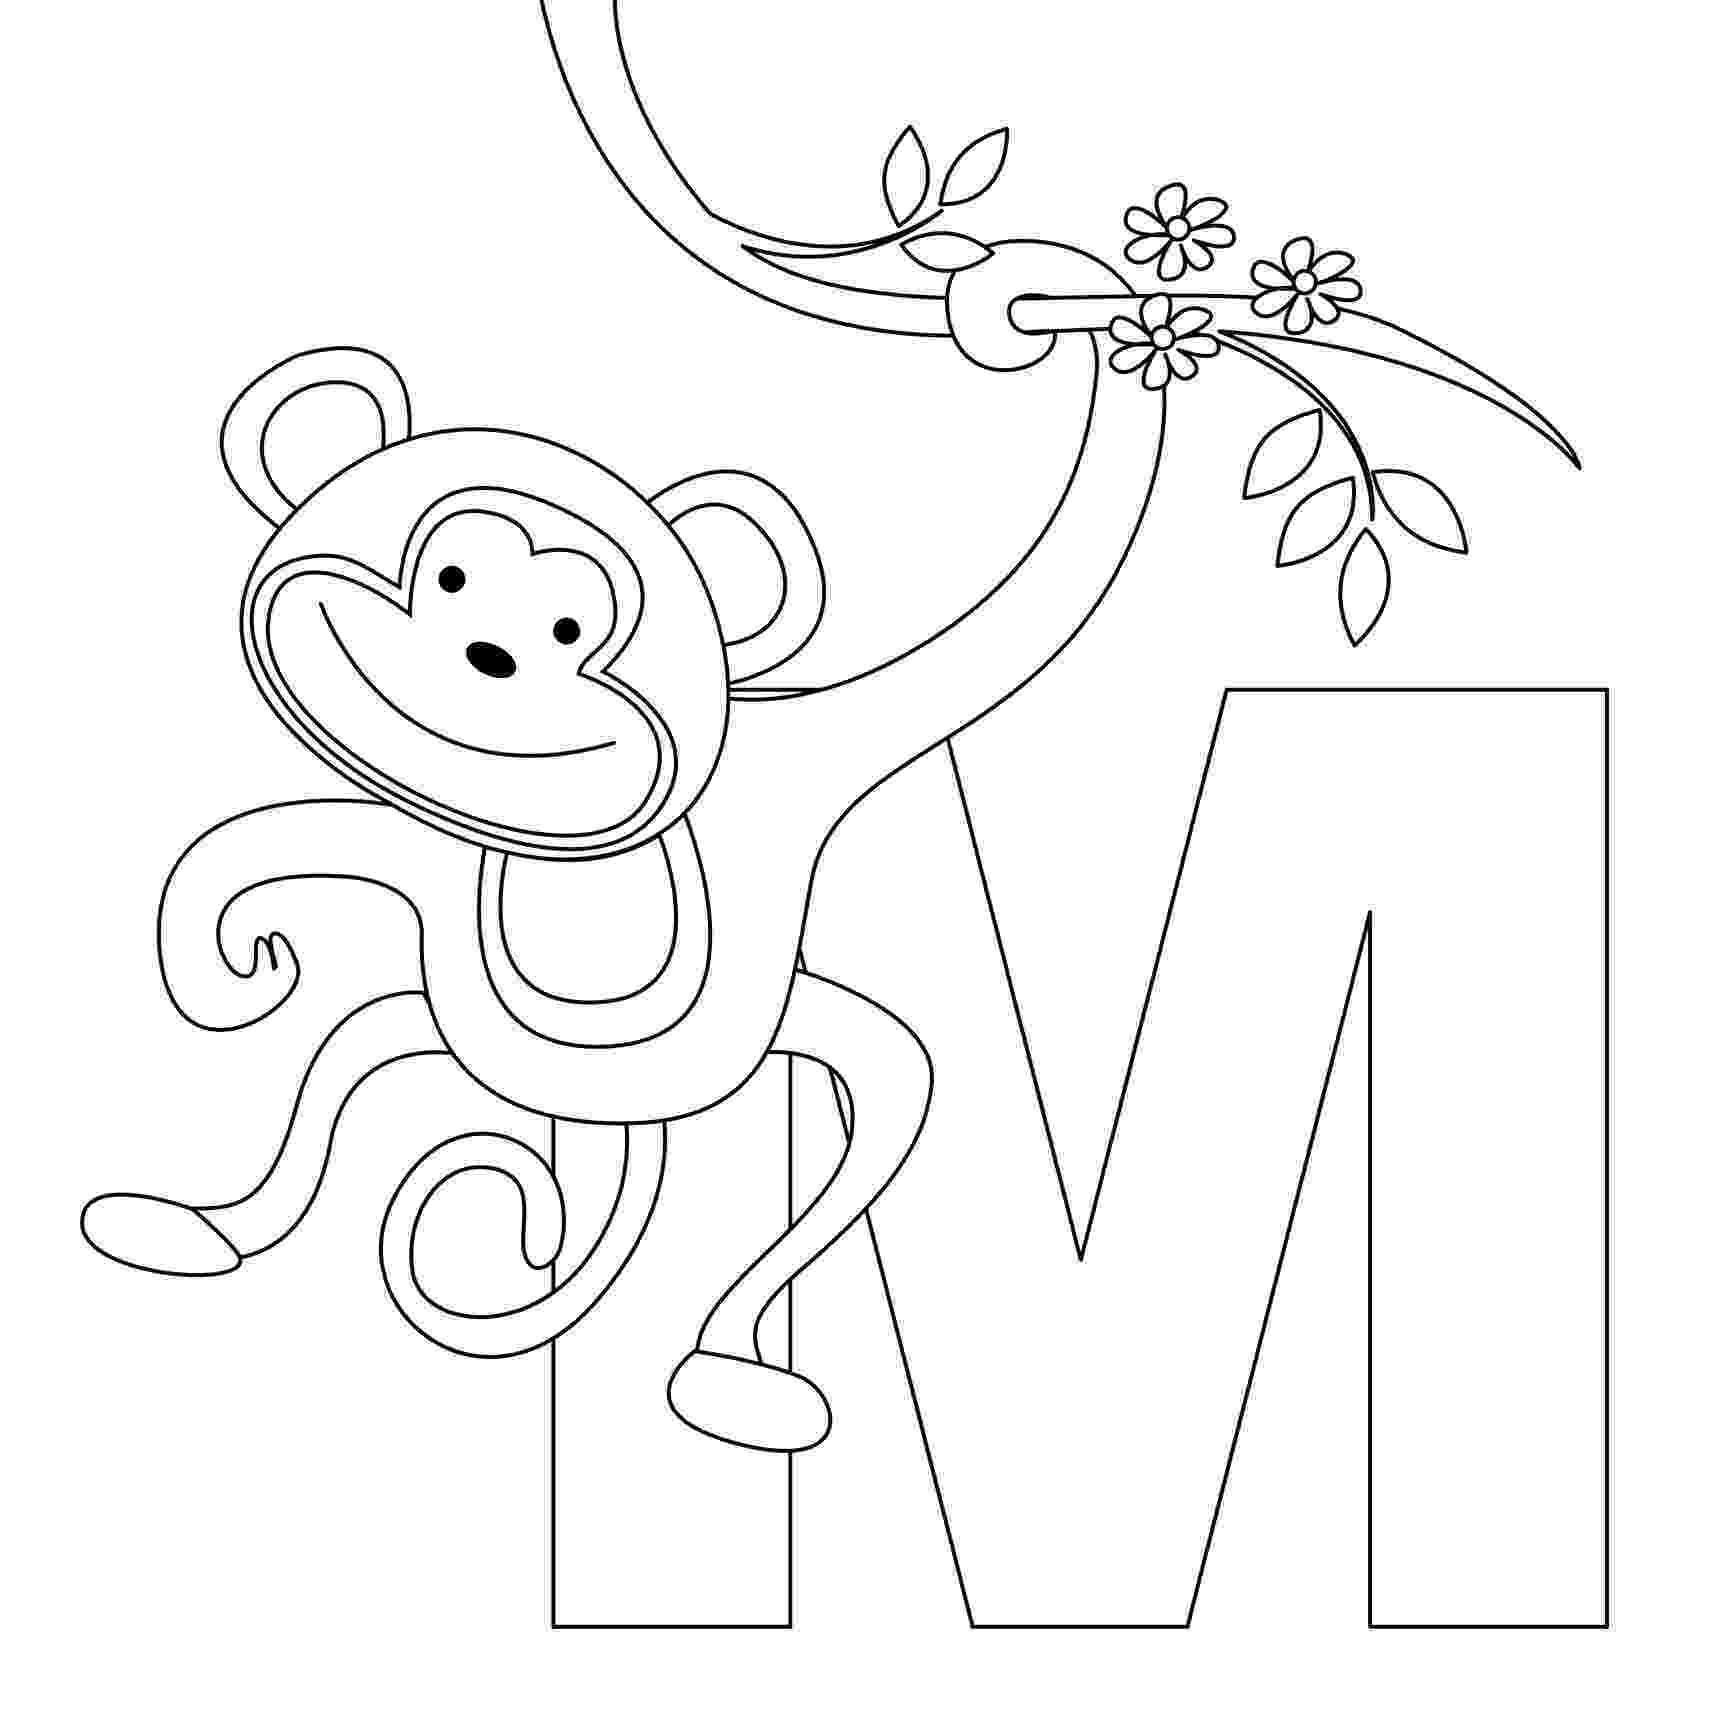 free alphabet coloring pages free printable alphabet coloring pages for kids best alphabet coloring free pages